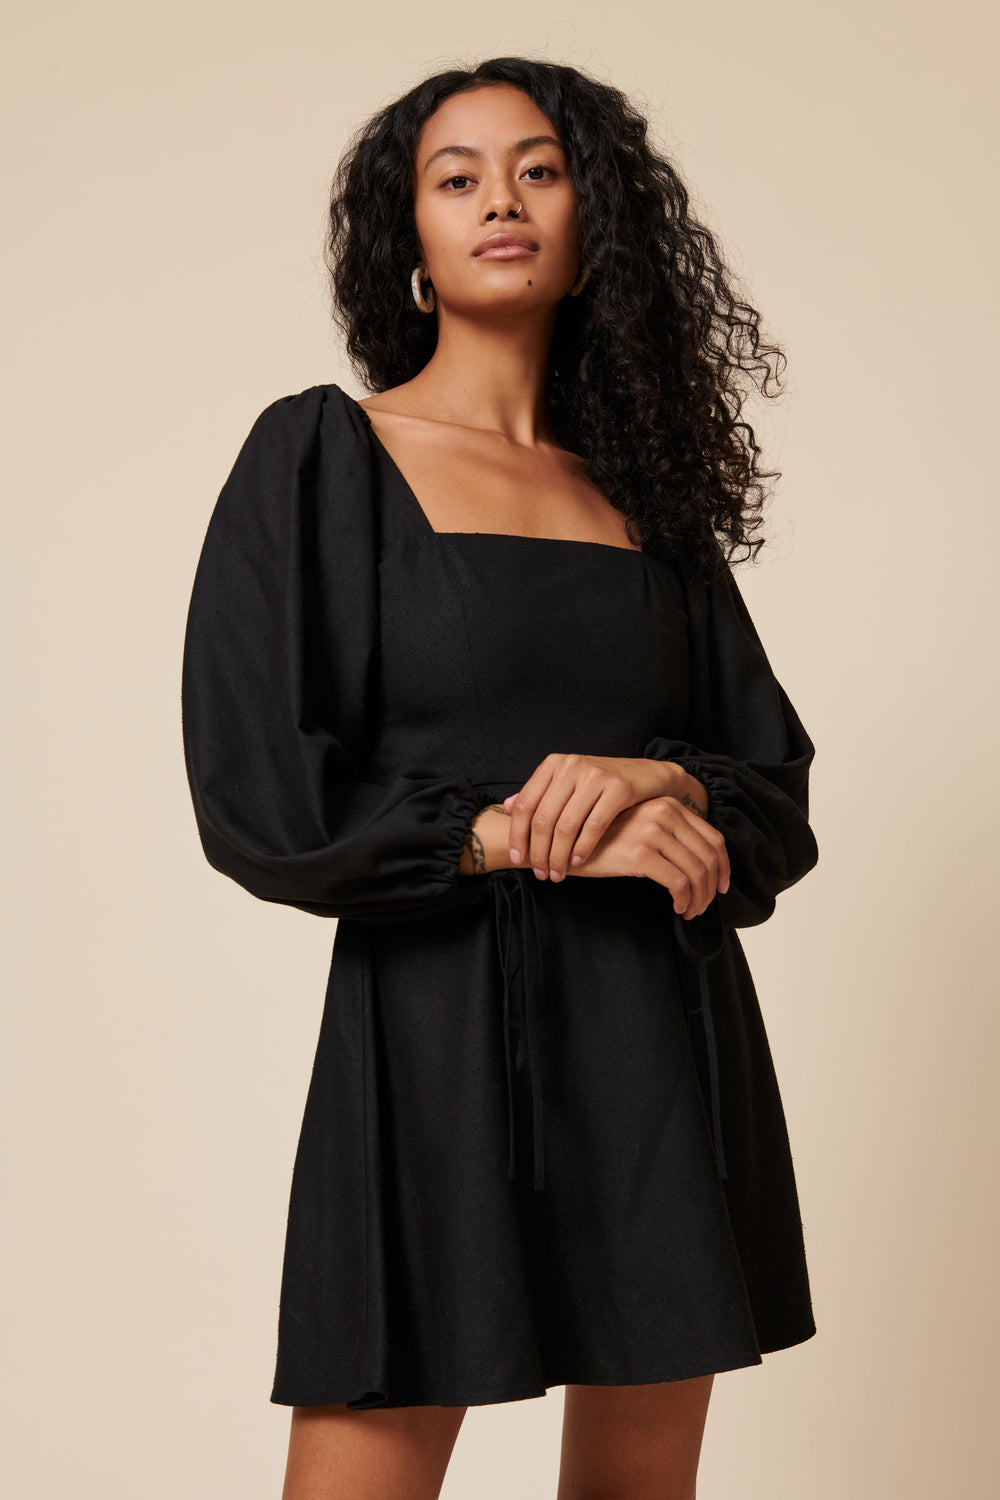 Autumn Dress in Black - Whimsy & Row